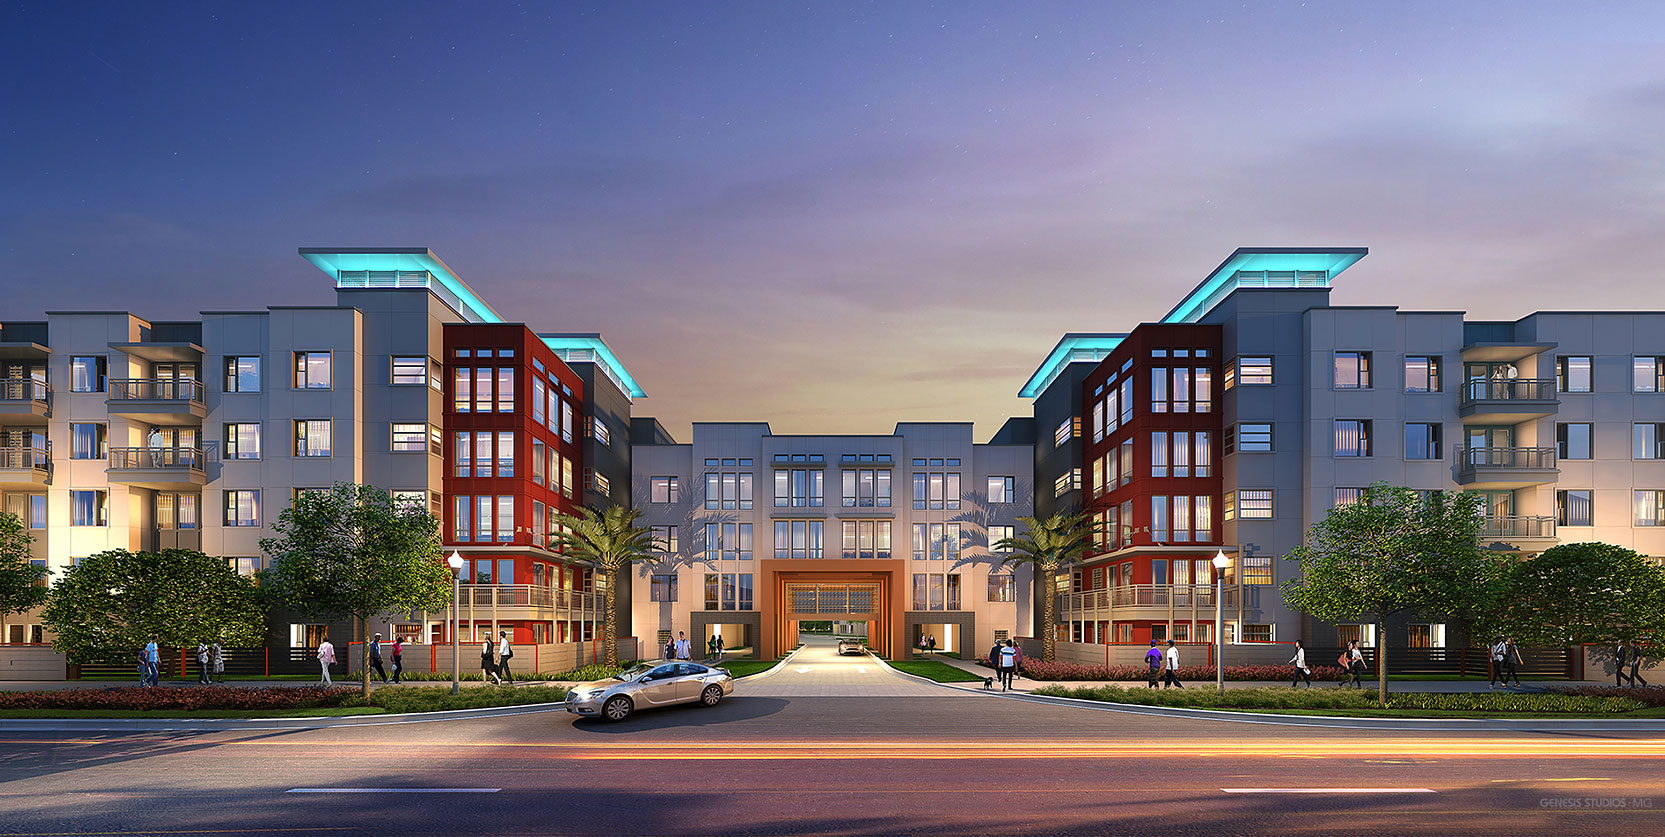 Exterior Photorealistic Architectural Renderings